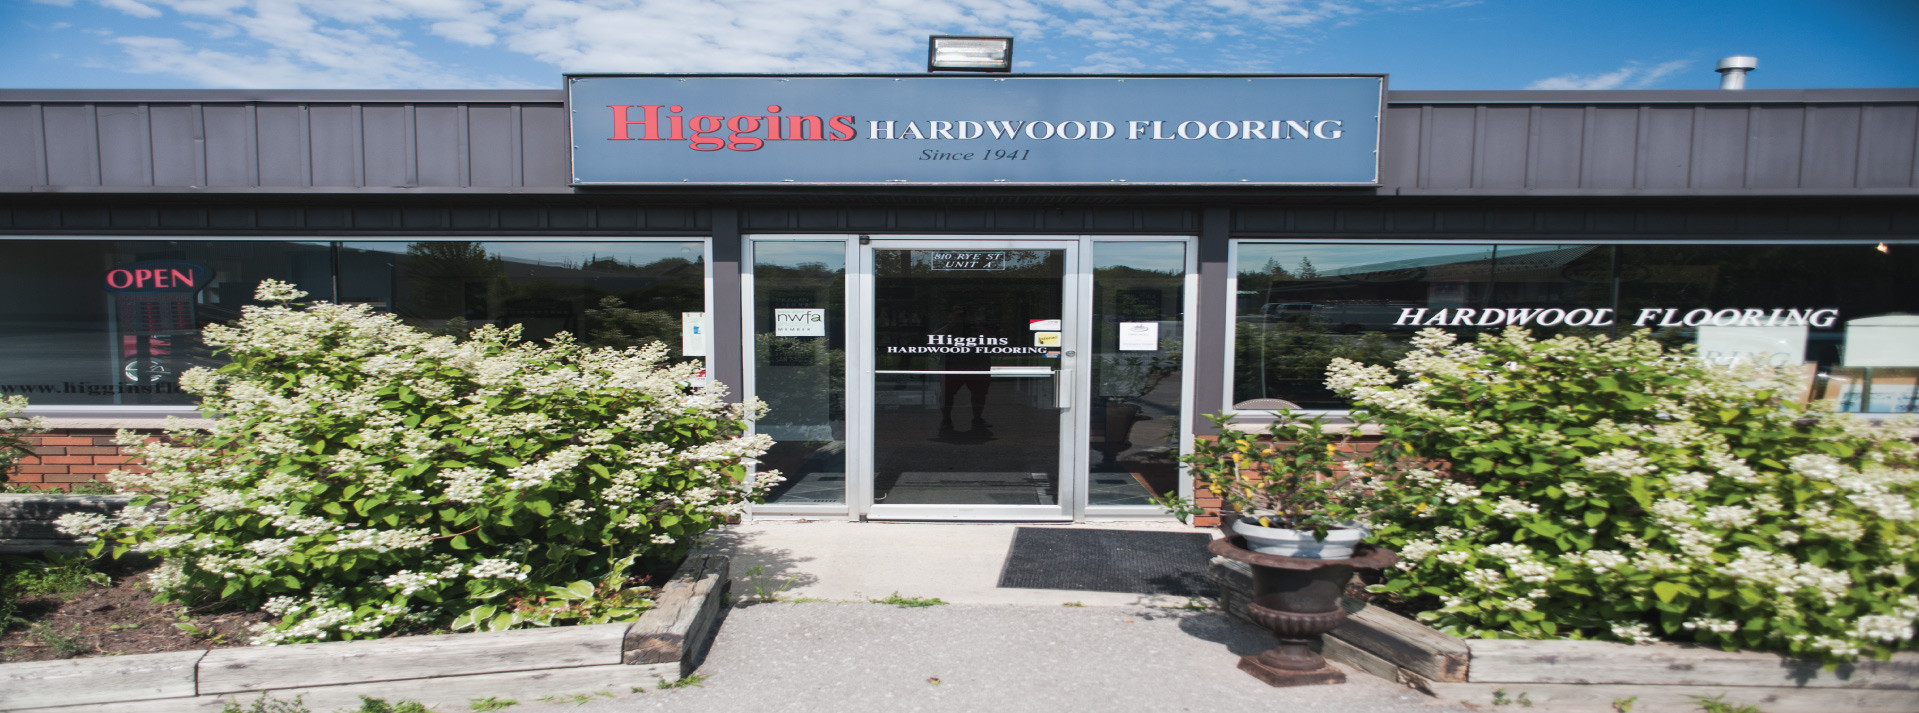 Hardwood Floor Refinishing Durham Region Of Higgins Hardwood Flooring In Peterborough Oshawa Lindsay Ajax Inside Read More